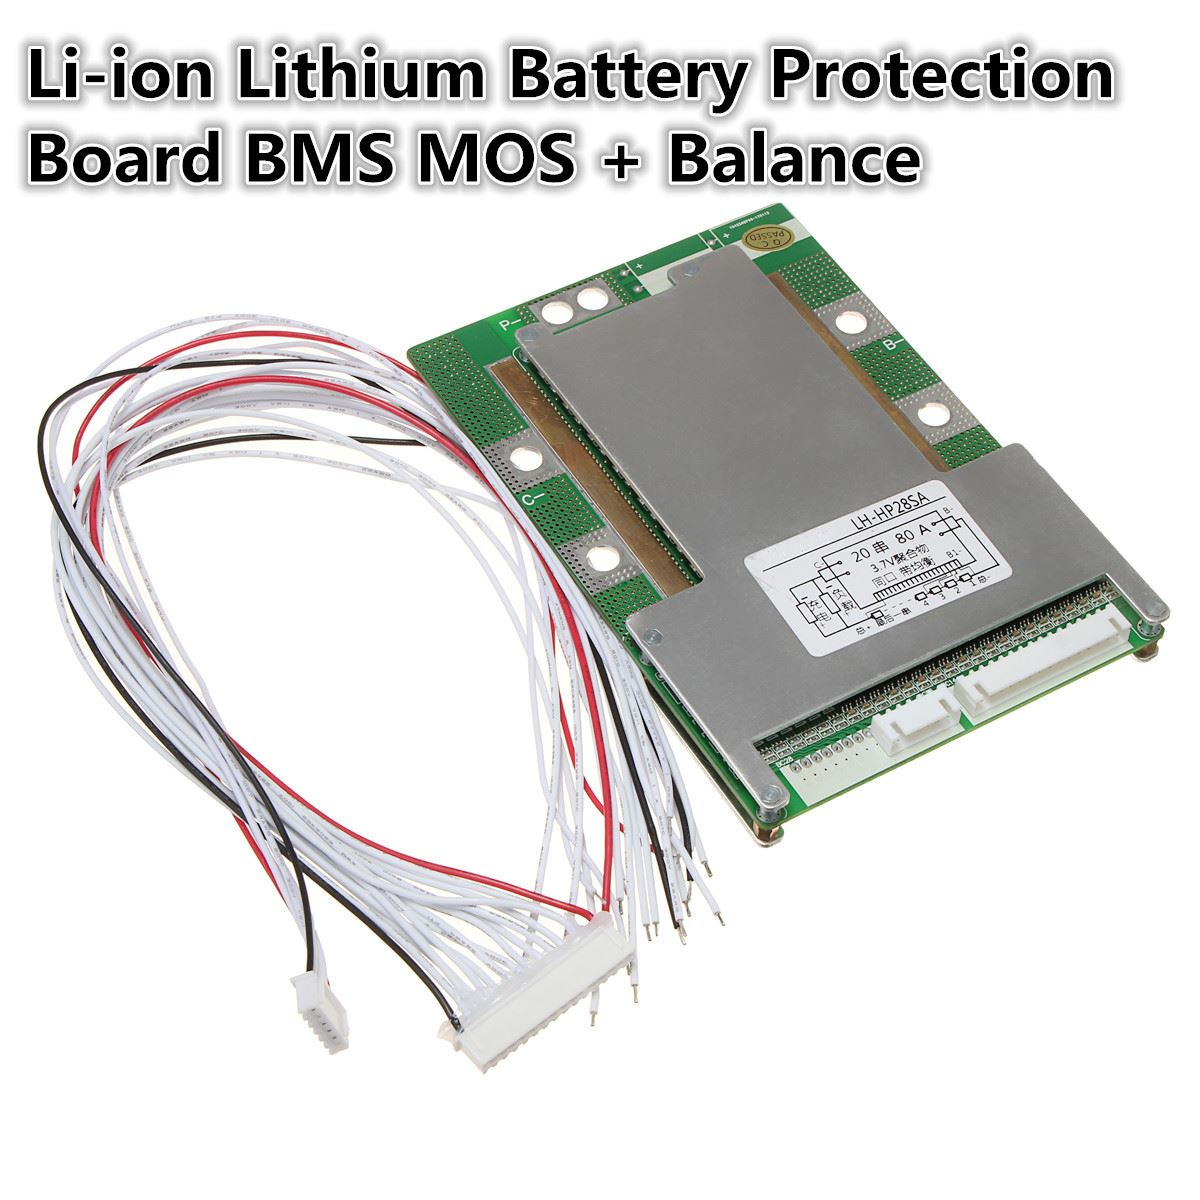 1PC New Arrival 20S 72V(84V) 80A 18650 Li-ion Lithium Battery Protection Board BMS MOS + Balance Module